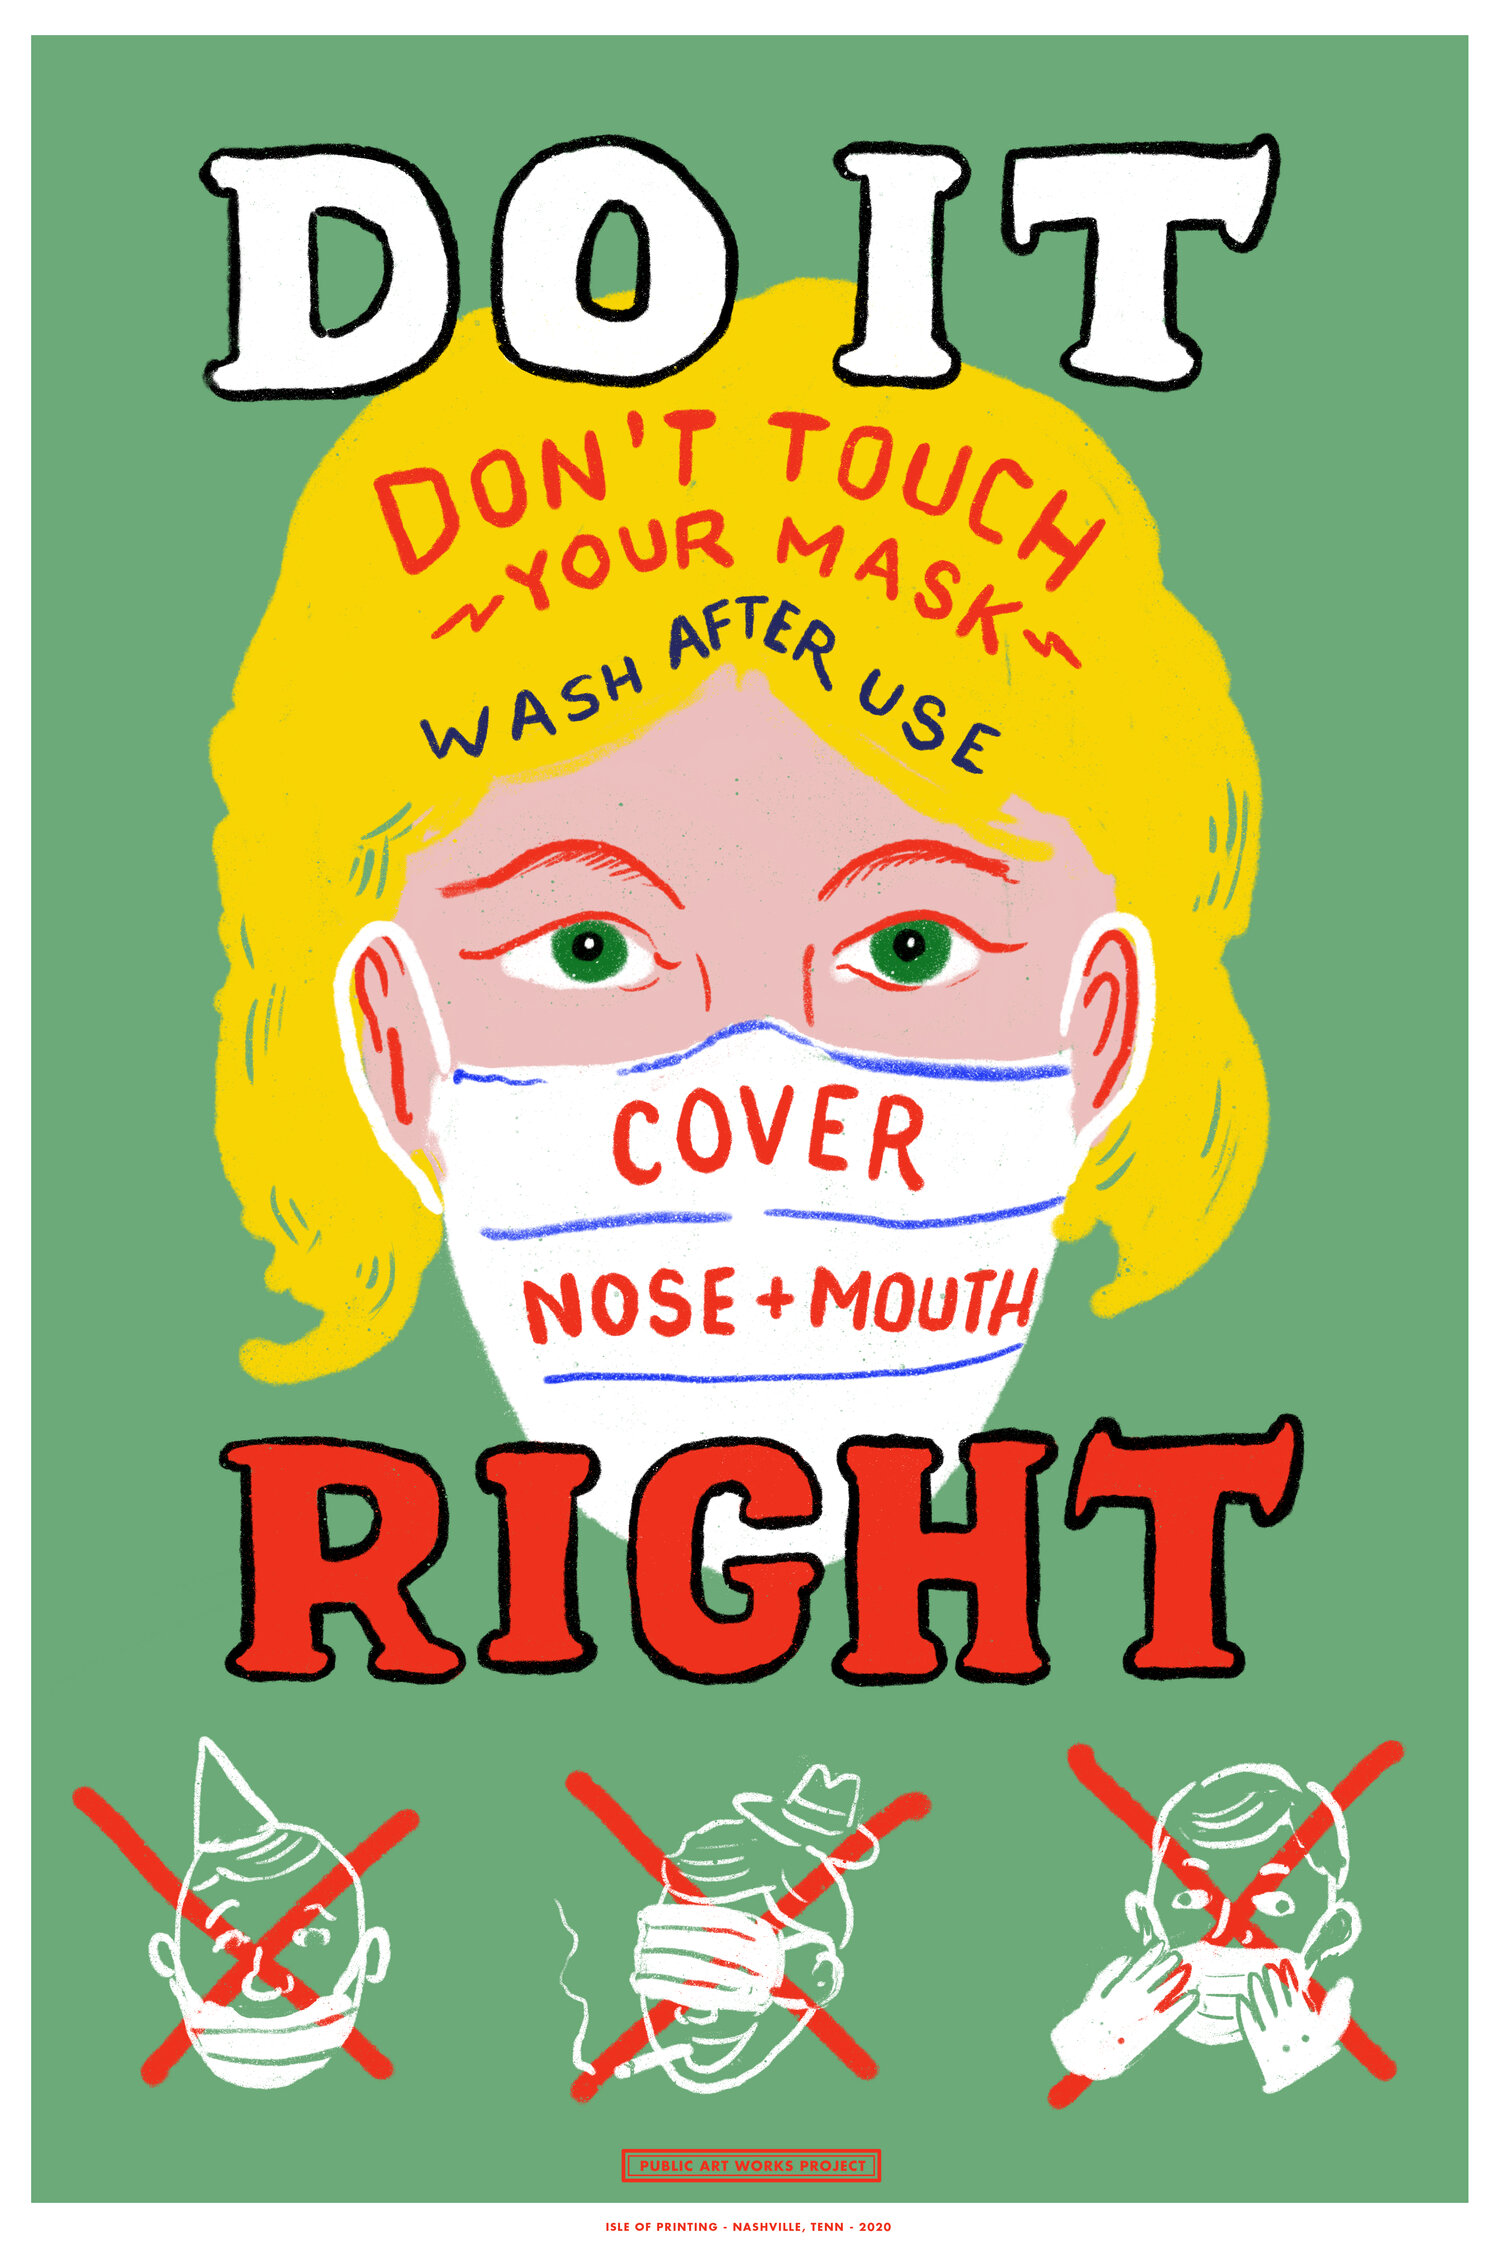 illustrative PSA poster of a woman wearing a mask and text informing you on how to safely wear a mask